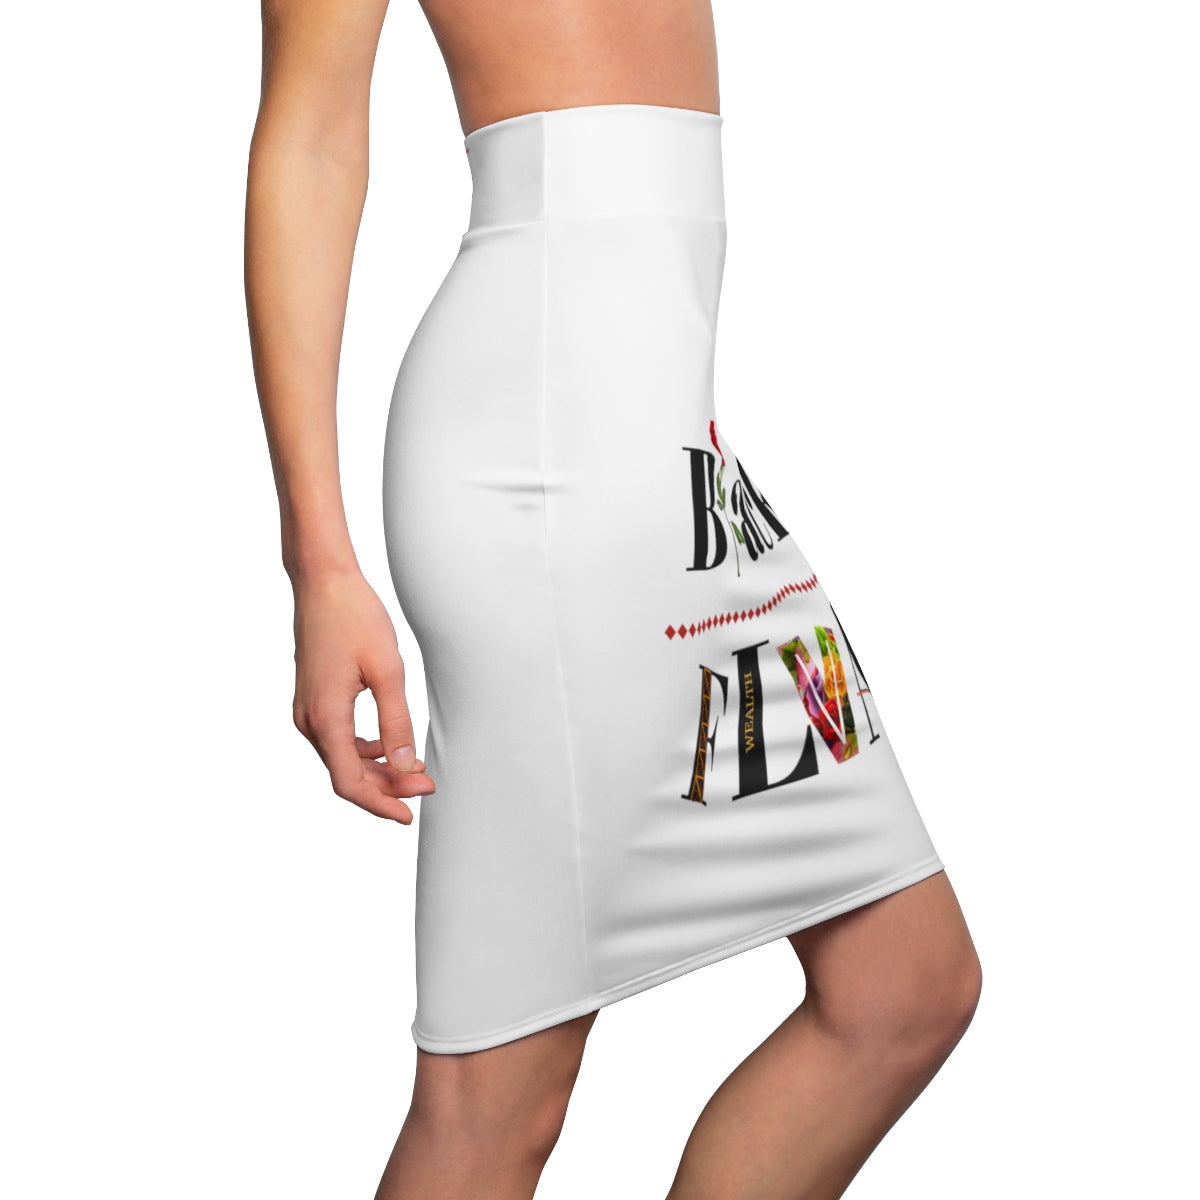 Women's Pencil Skirt - Flavorsofwealth